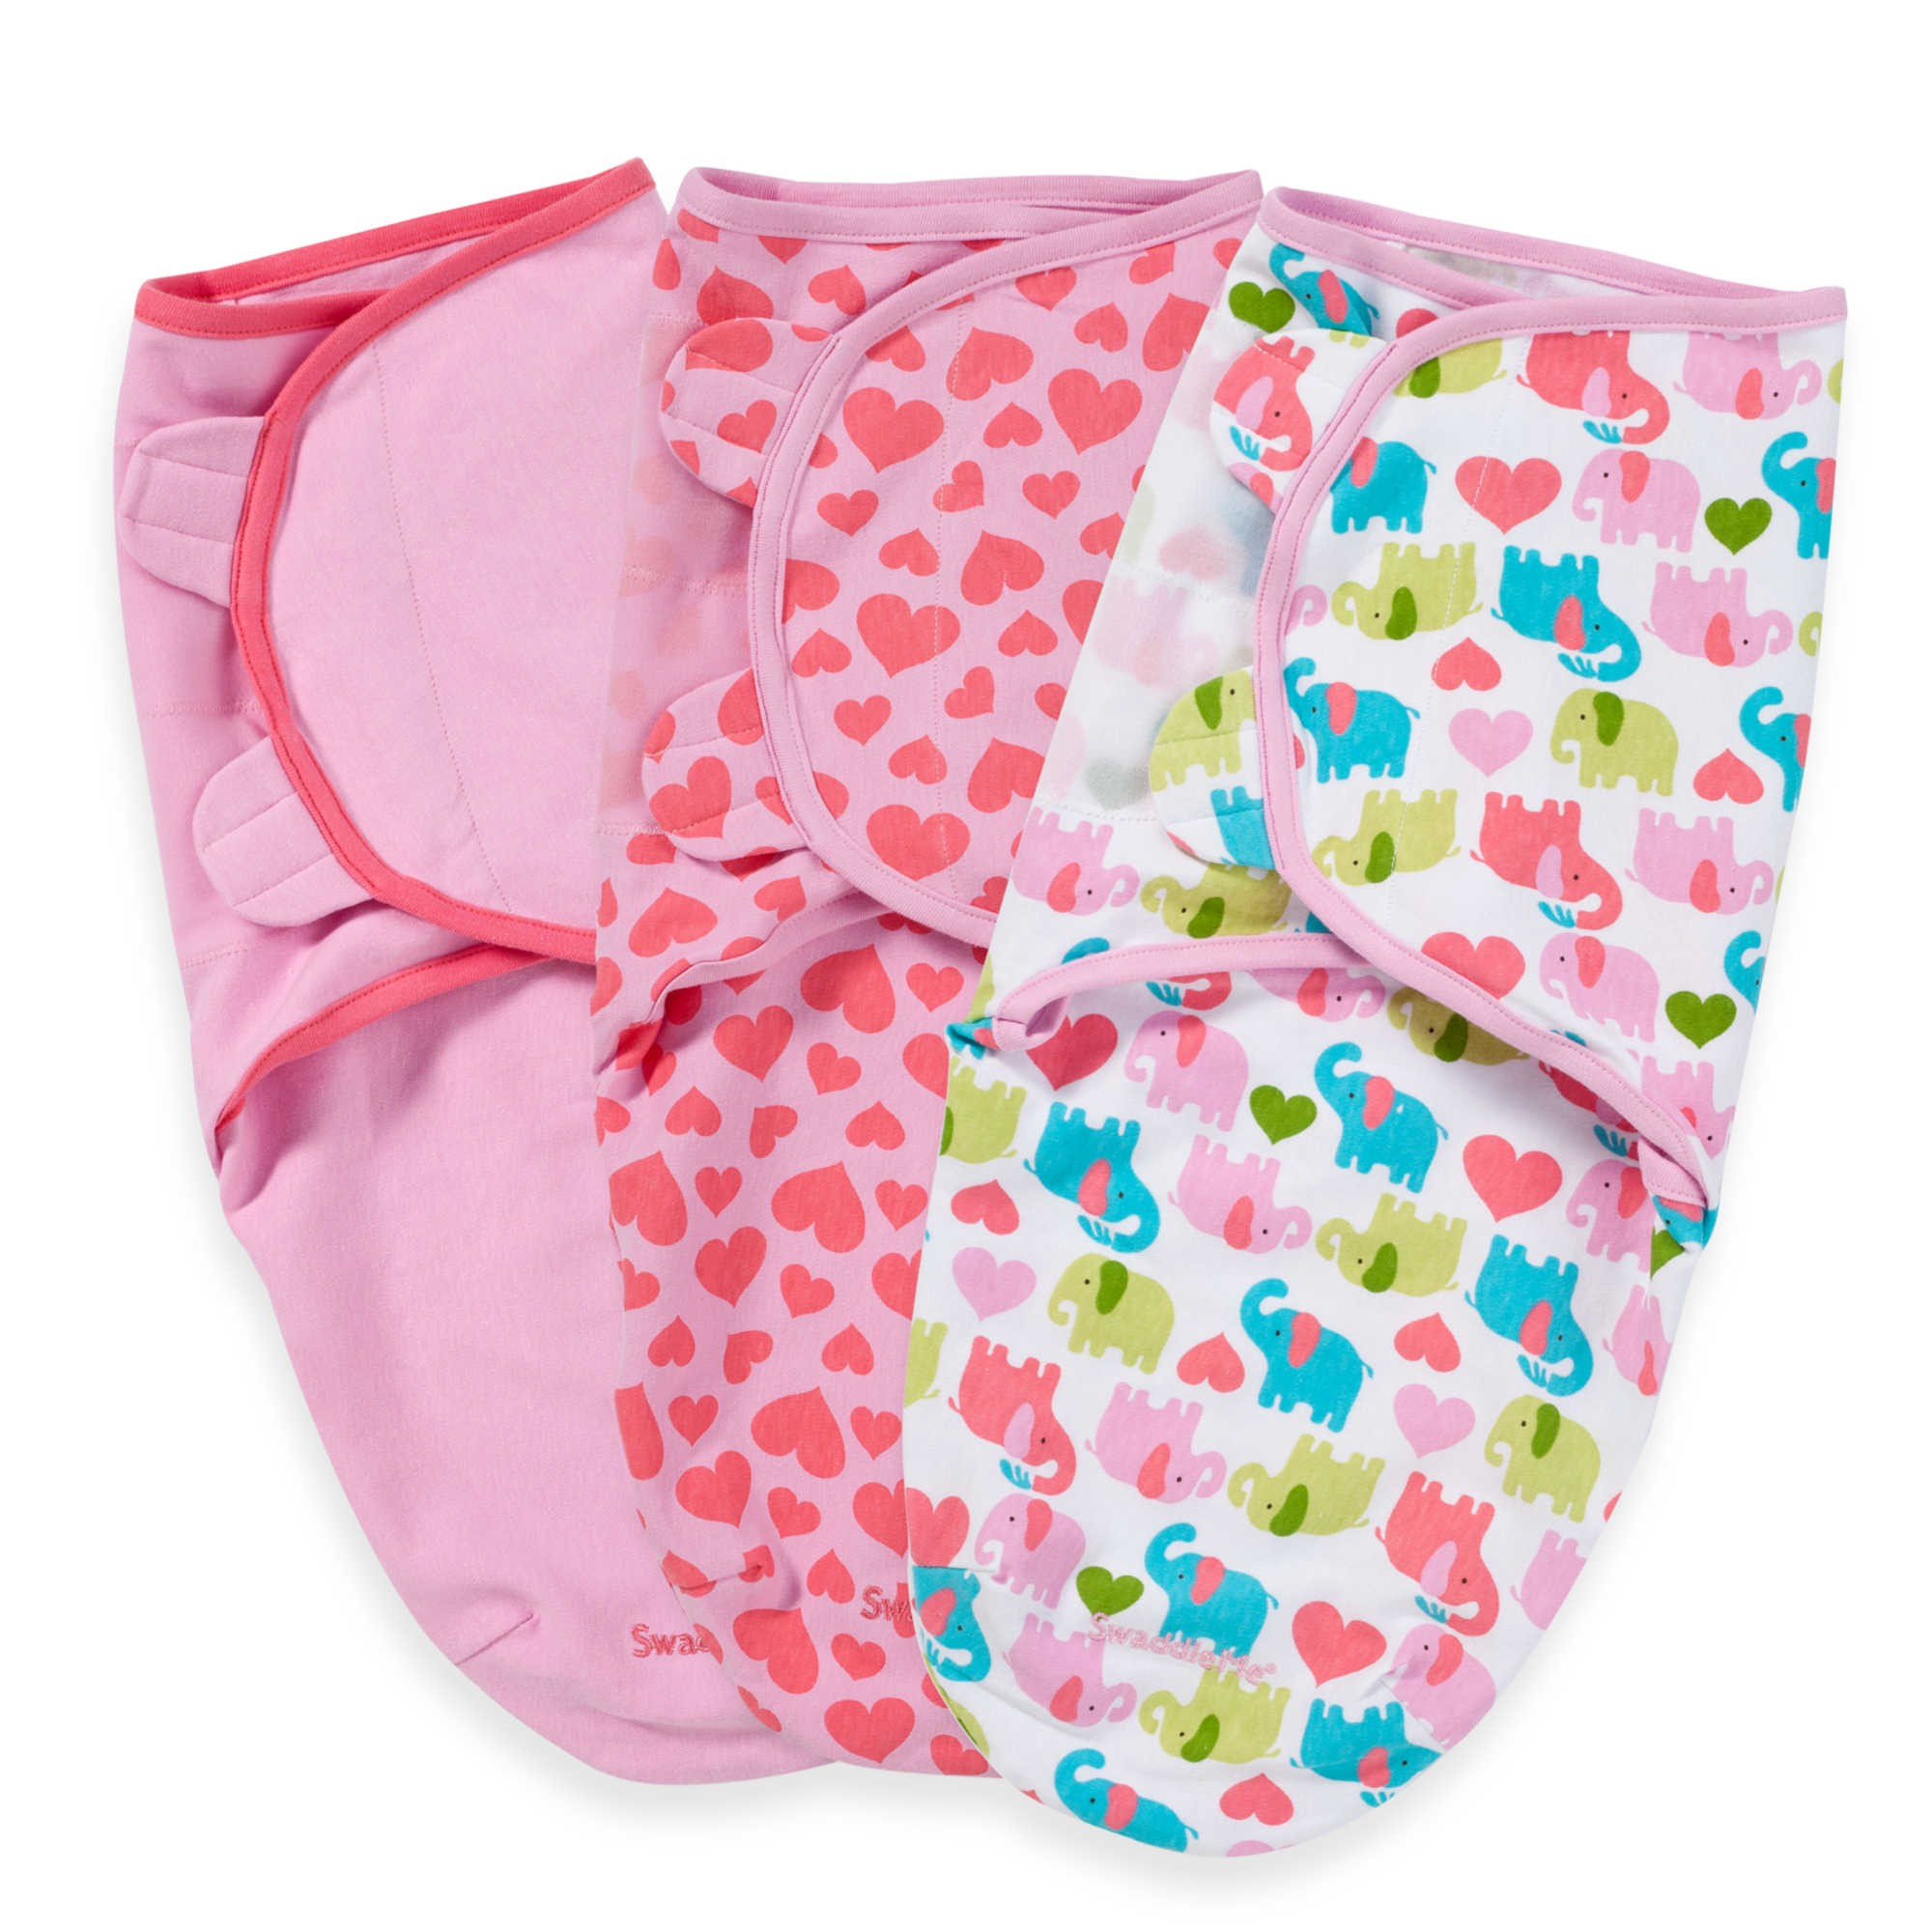 SwaddleMe Small 0-3 Months Original Swaddle, 3 Count